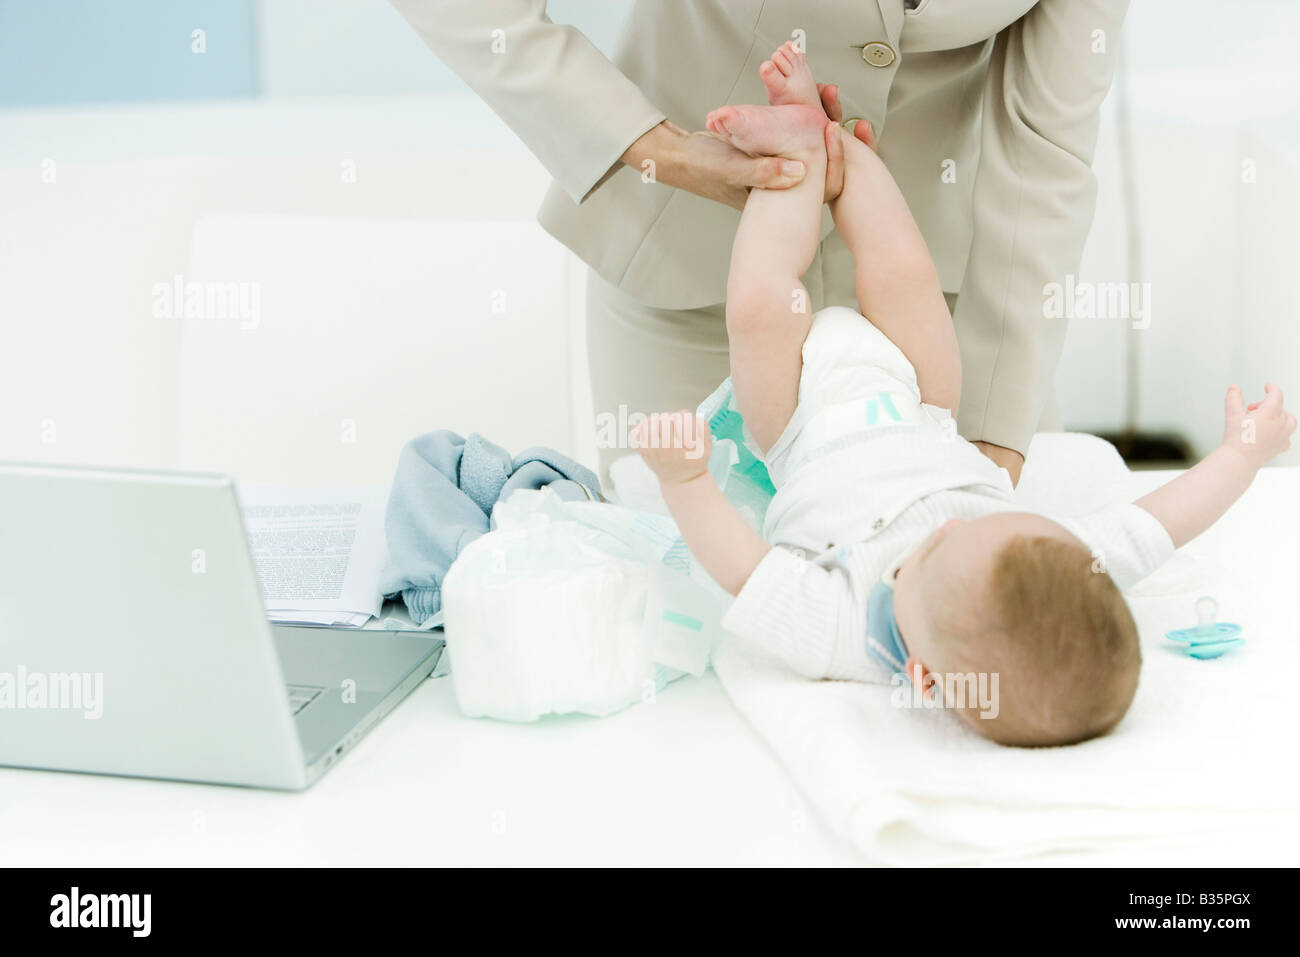 Professional woman changing baby's diaper on desk, cropped view Stock Photo